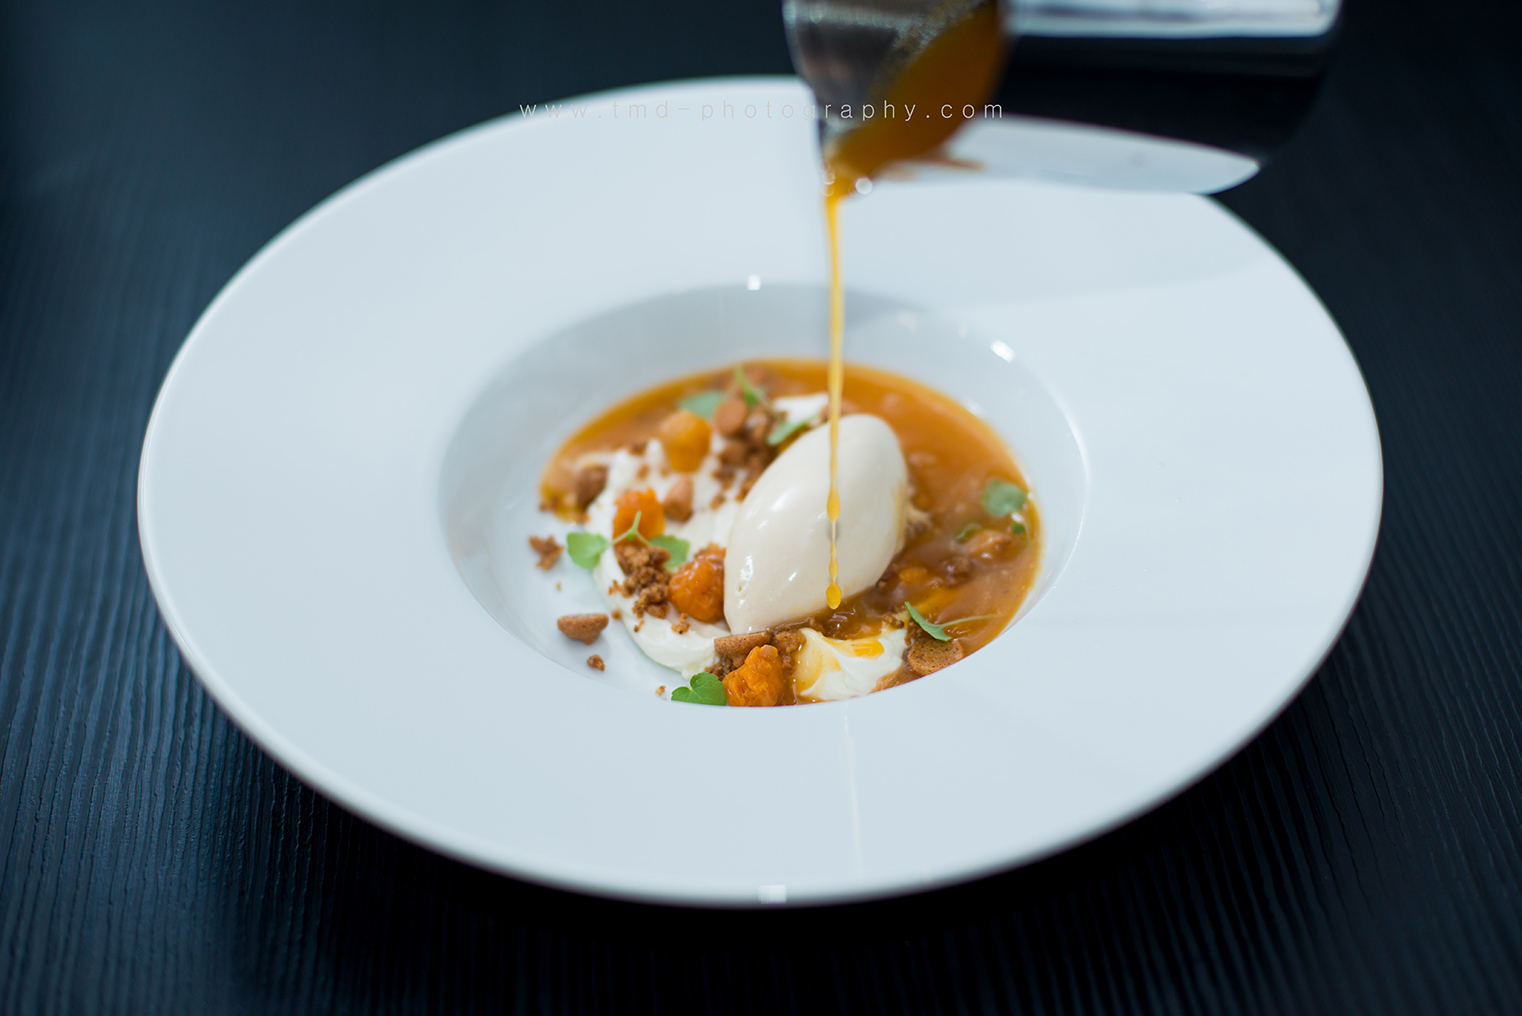 Dessert with cloudberries, caramel ice cream, almond biscuits and a hot cloudberrysoup